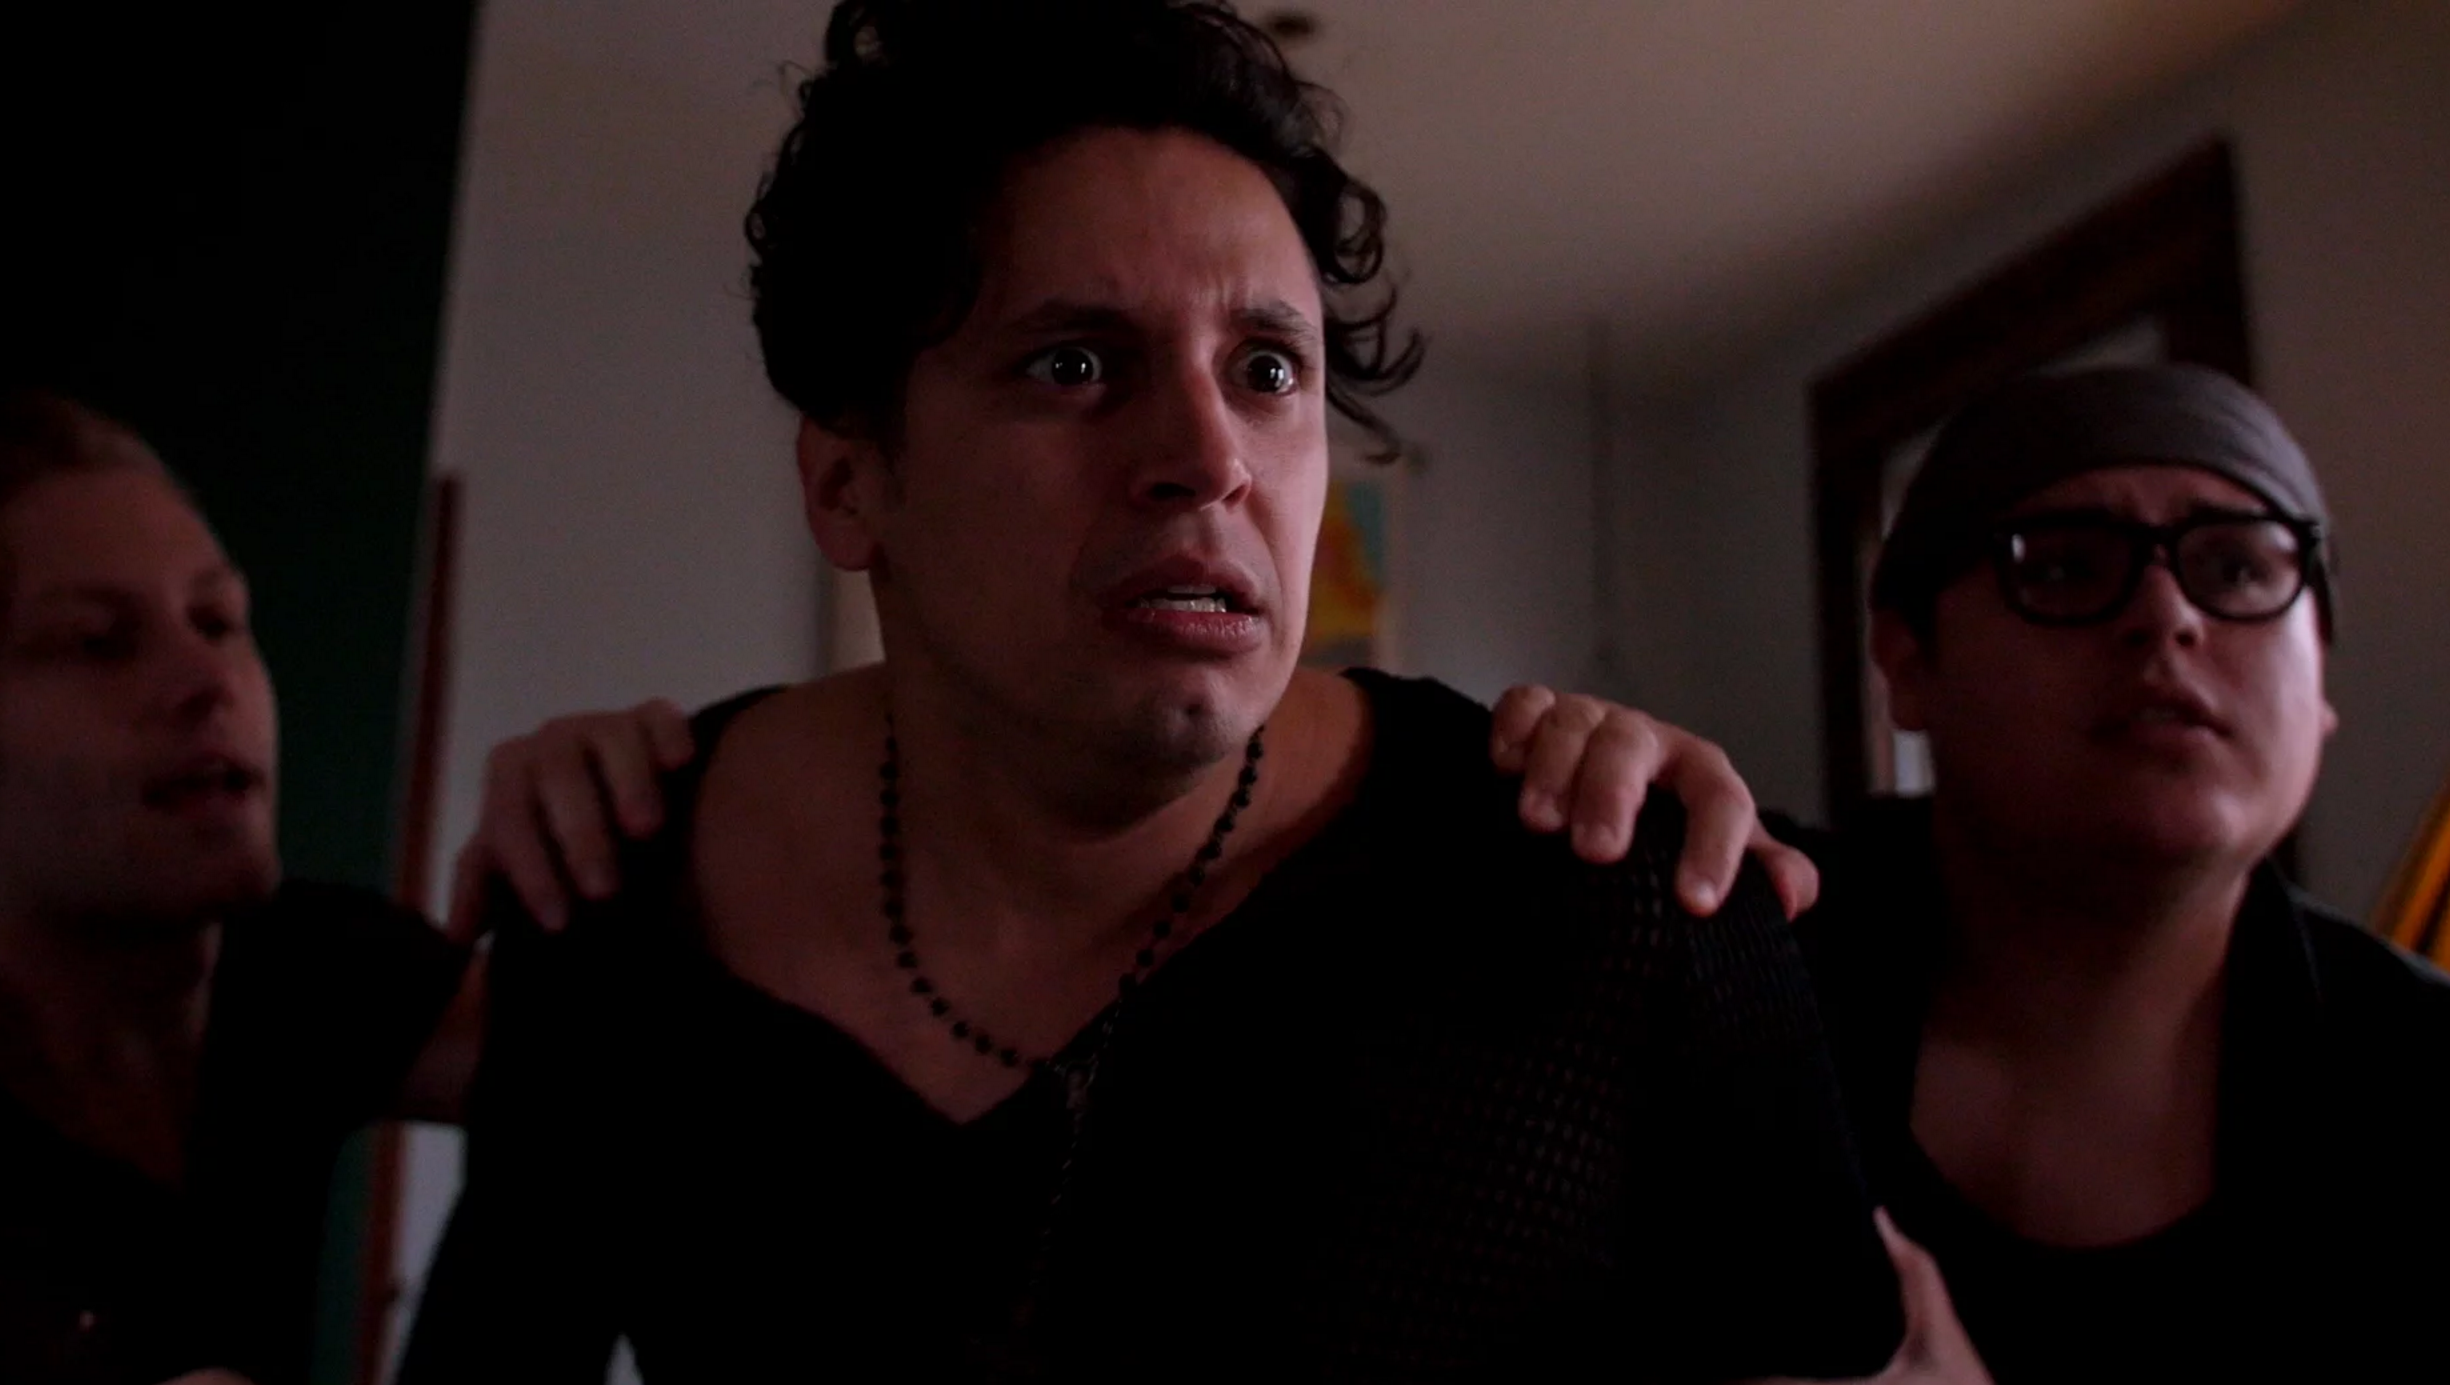 'Brujos' Is a Slick Web Series About Gay Latino Brujos That You'll Never See on Network TV